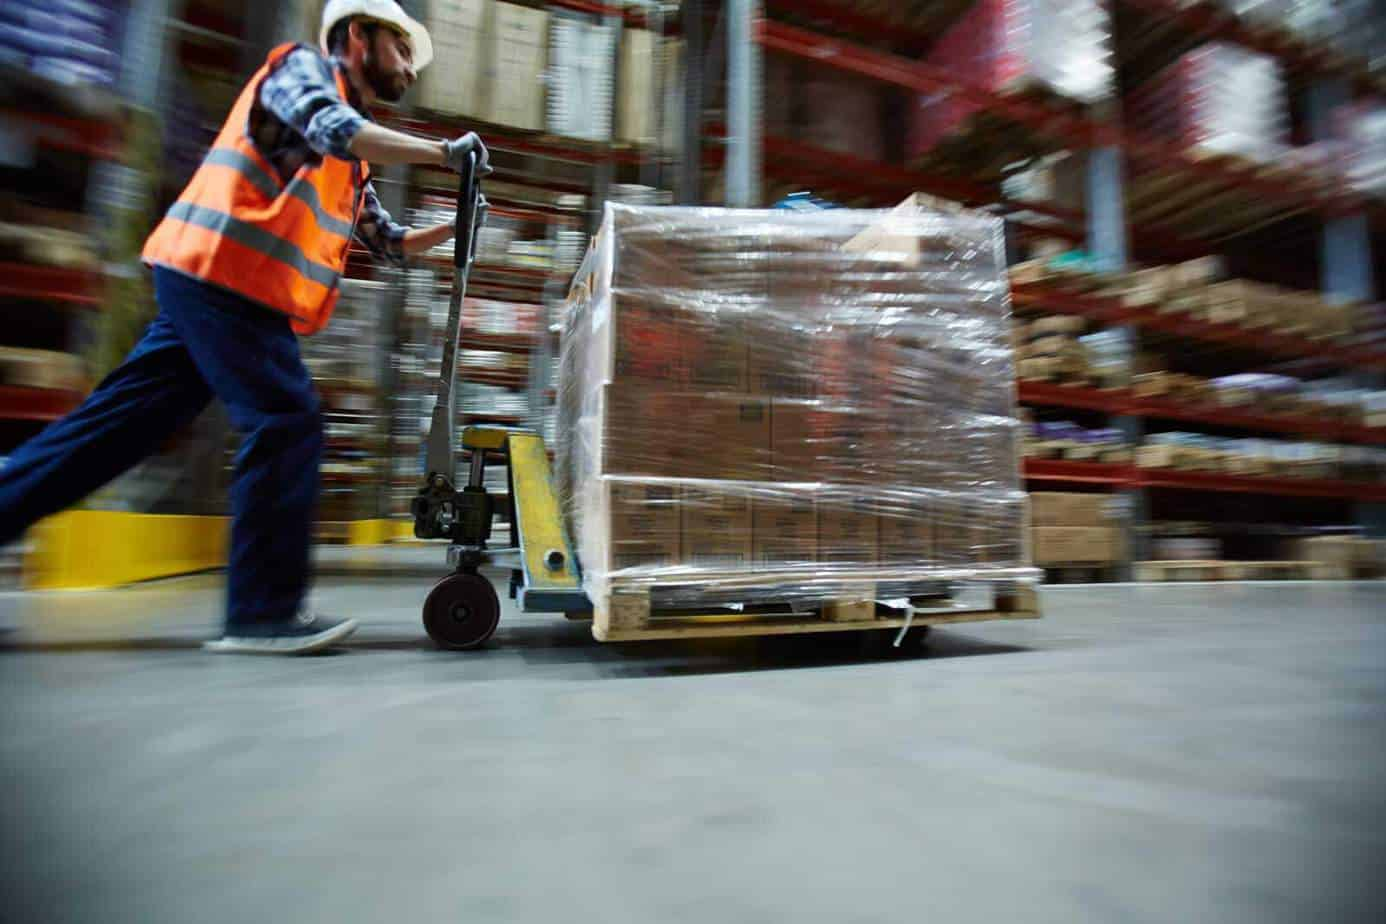 Image of distribution warehouse worker running to fulfill order